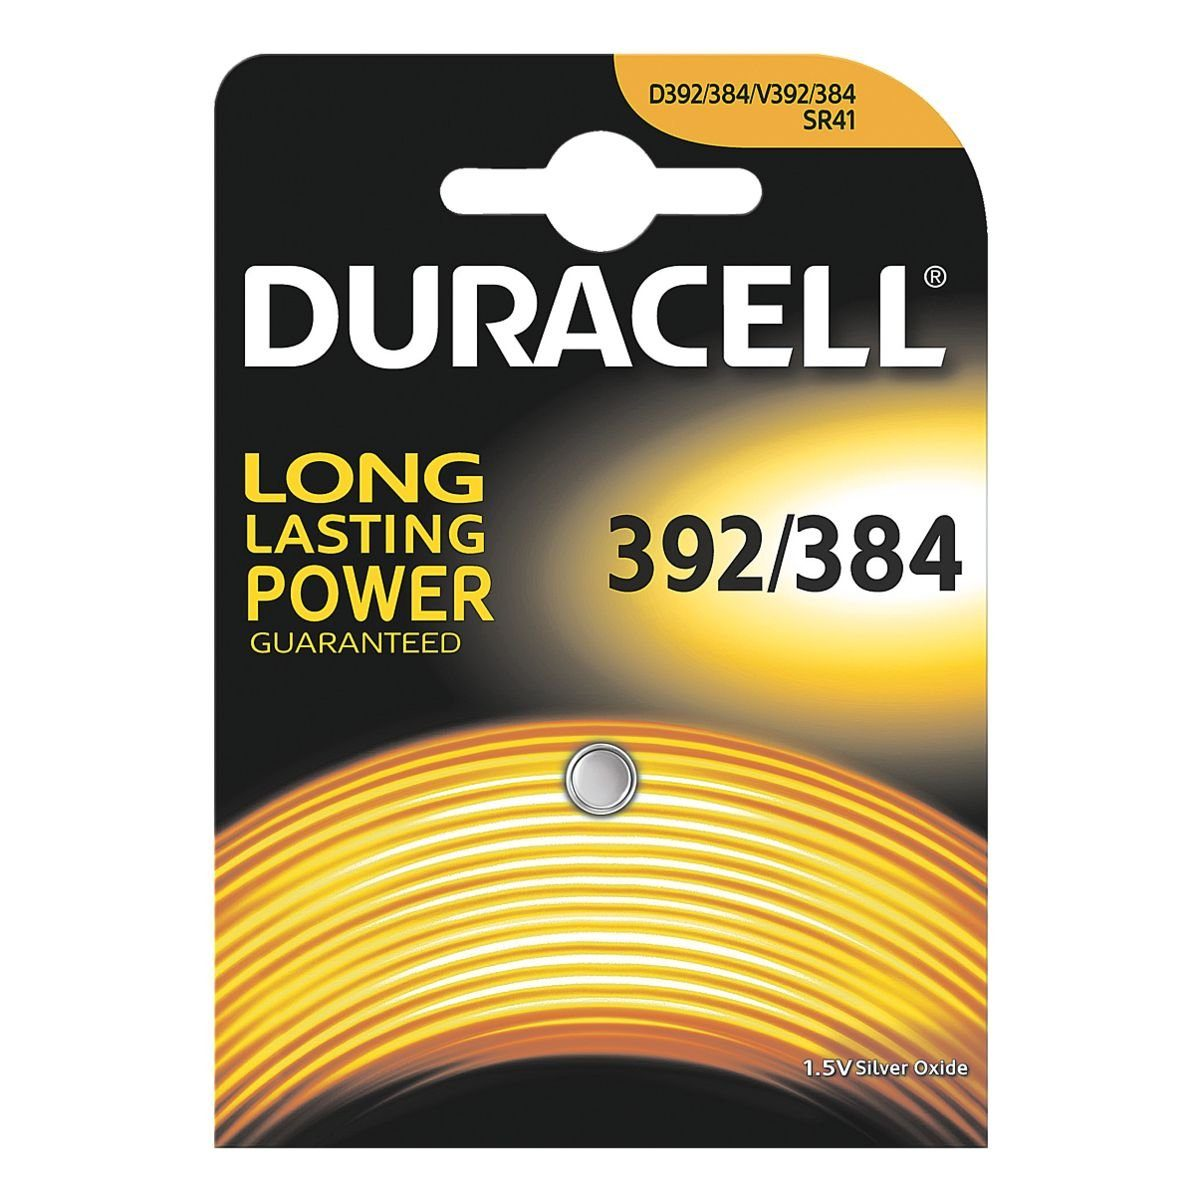 Duracell Knopfzelle SR41 / Typ 392 & 384